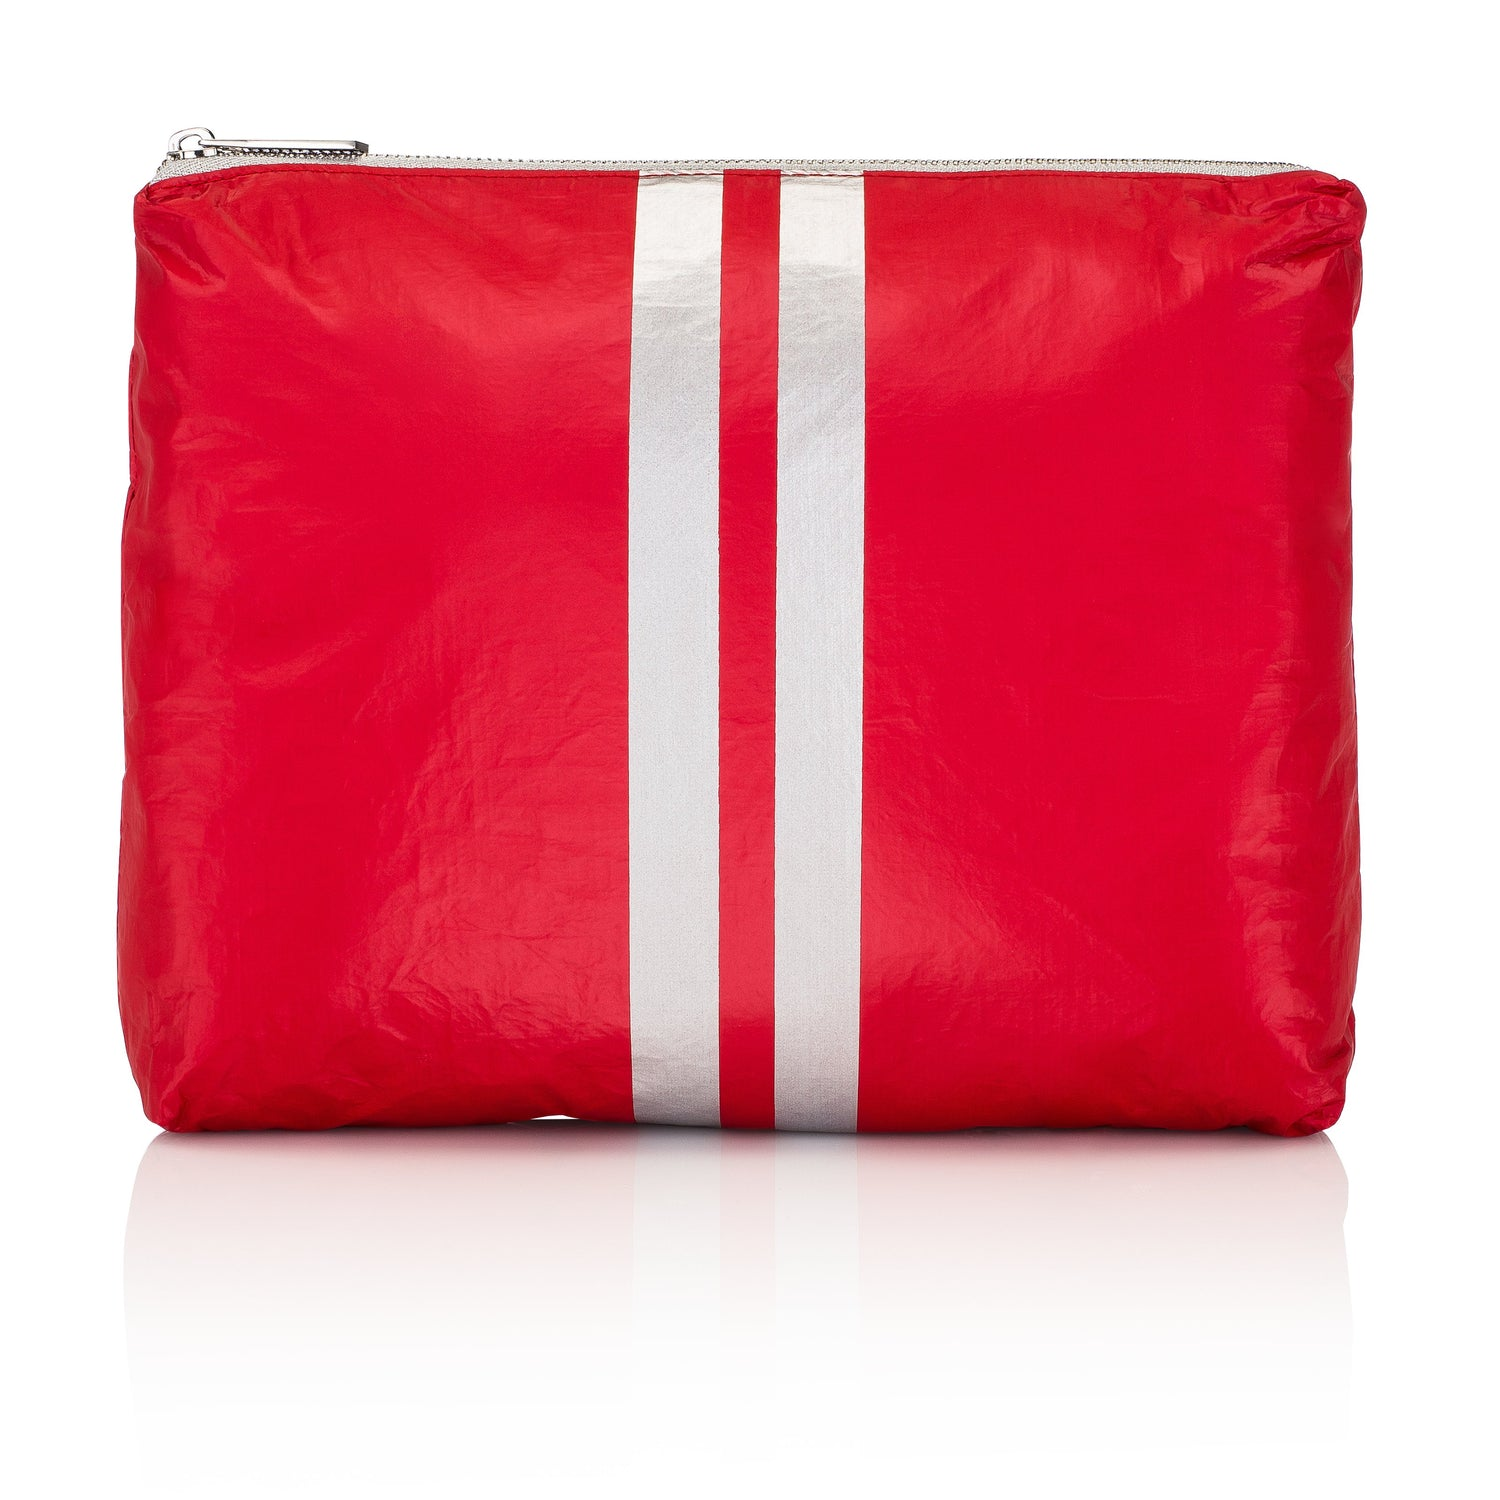 Medium Pack - Chili Pepper Red with Silver Lines